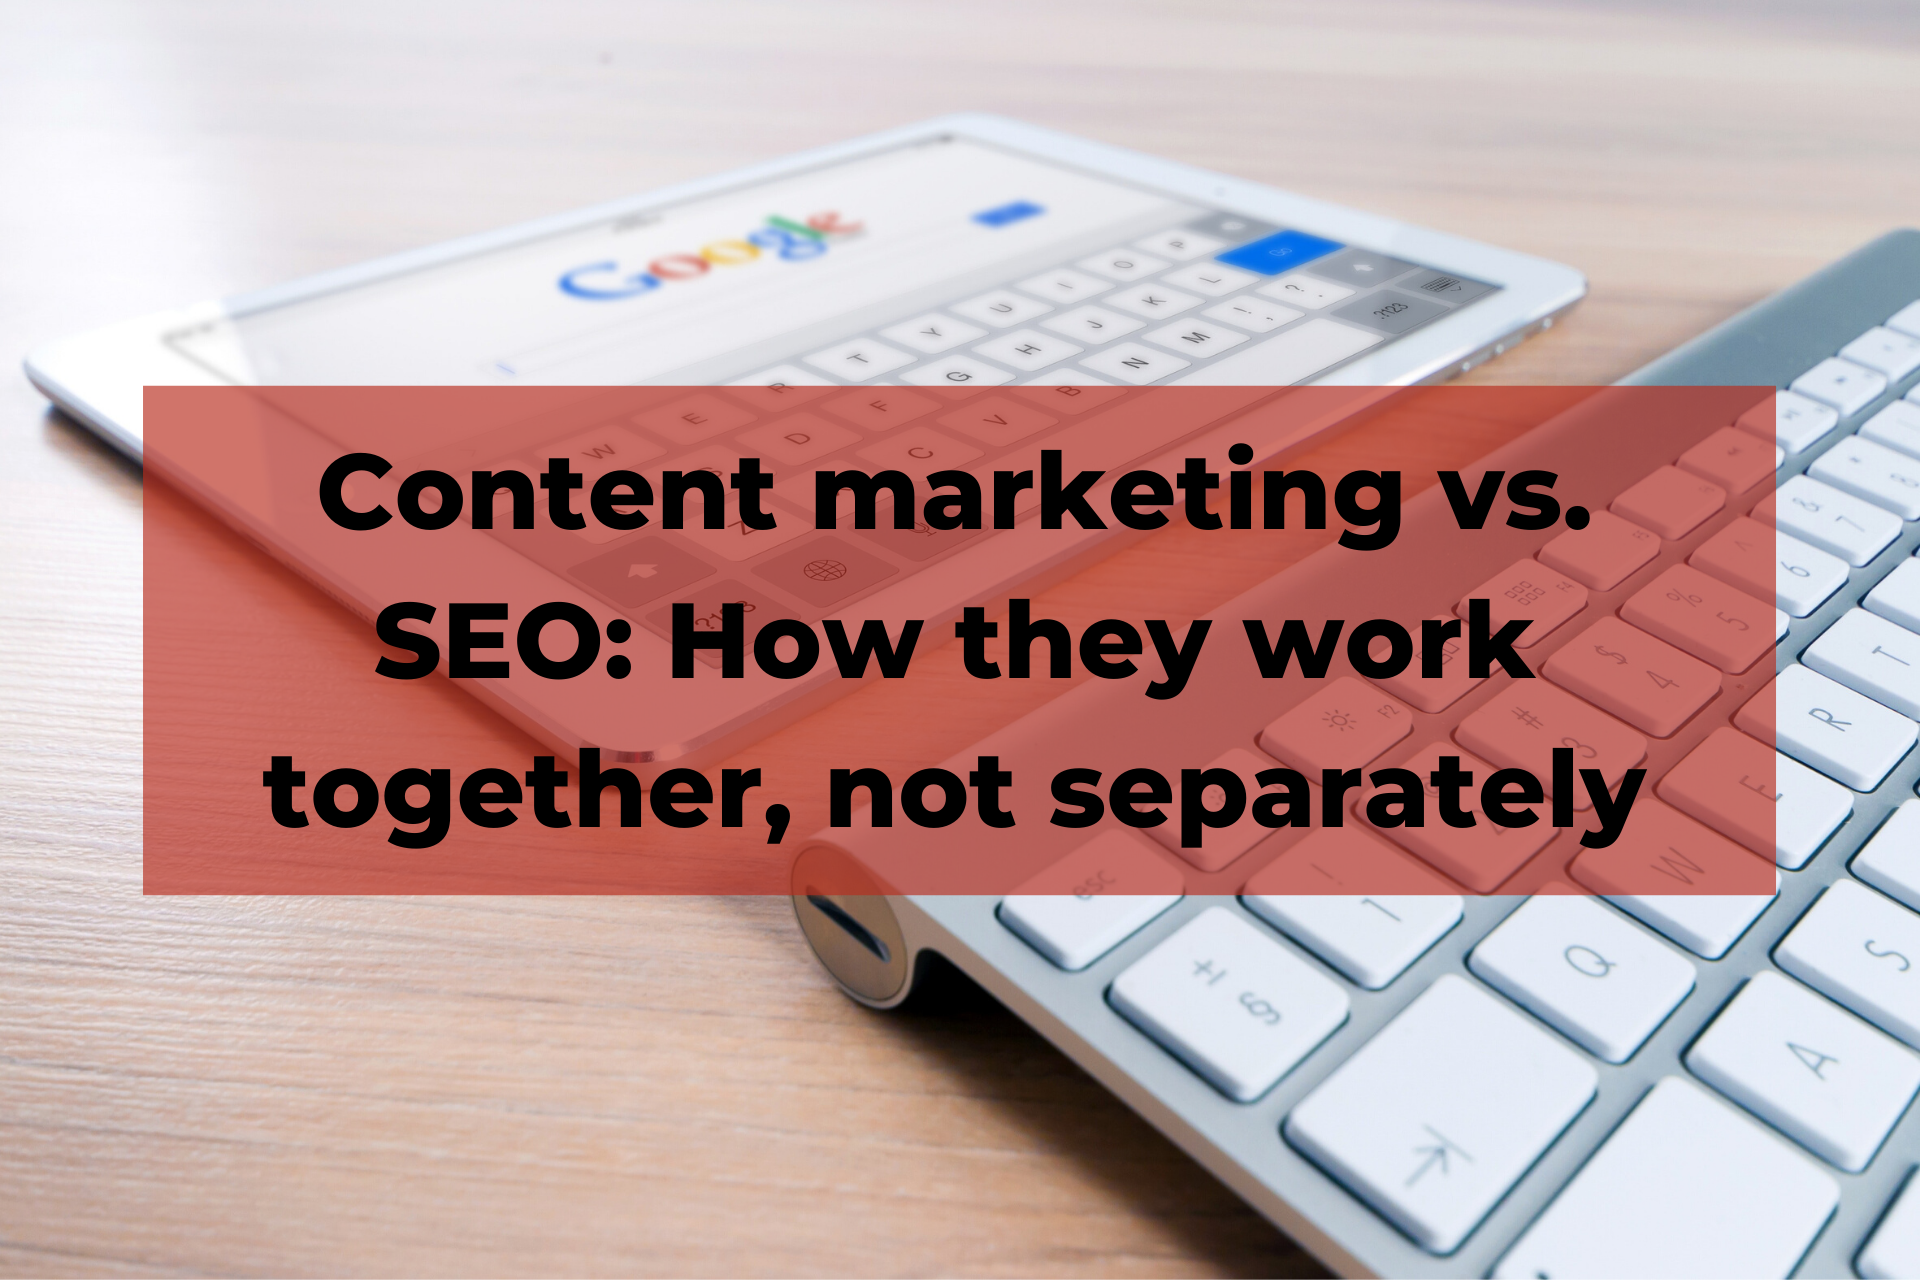 Content marketing vs. SEO: How they work together, not separately